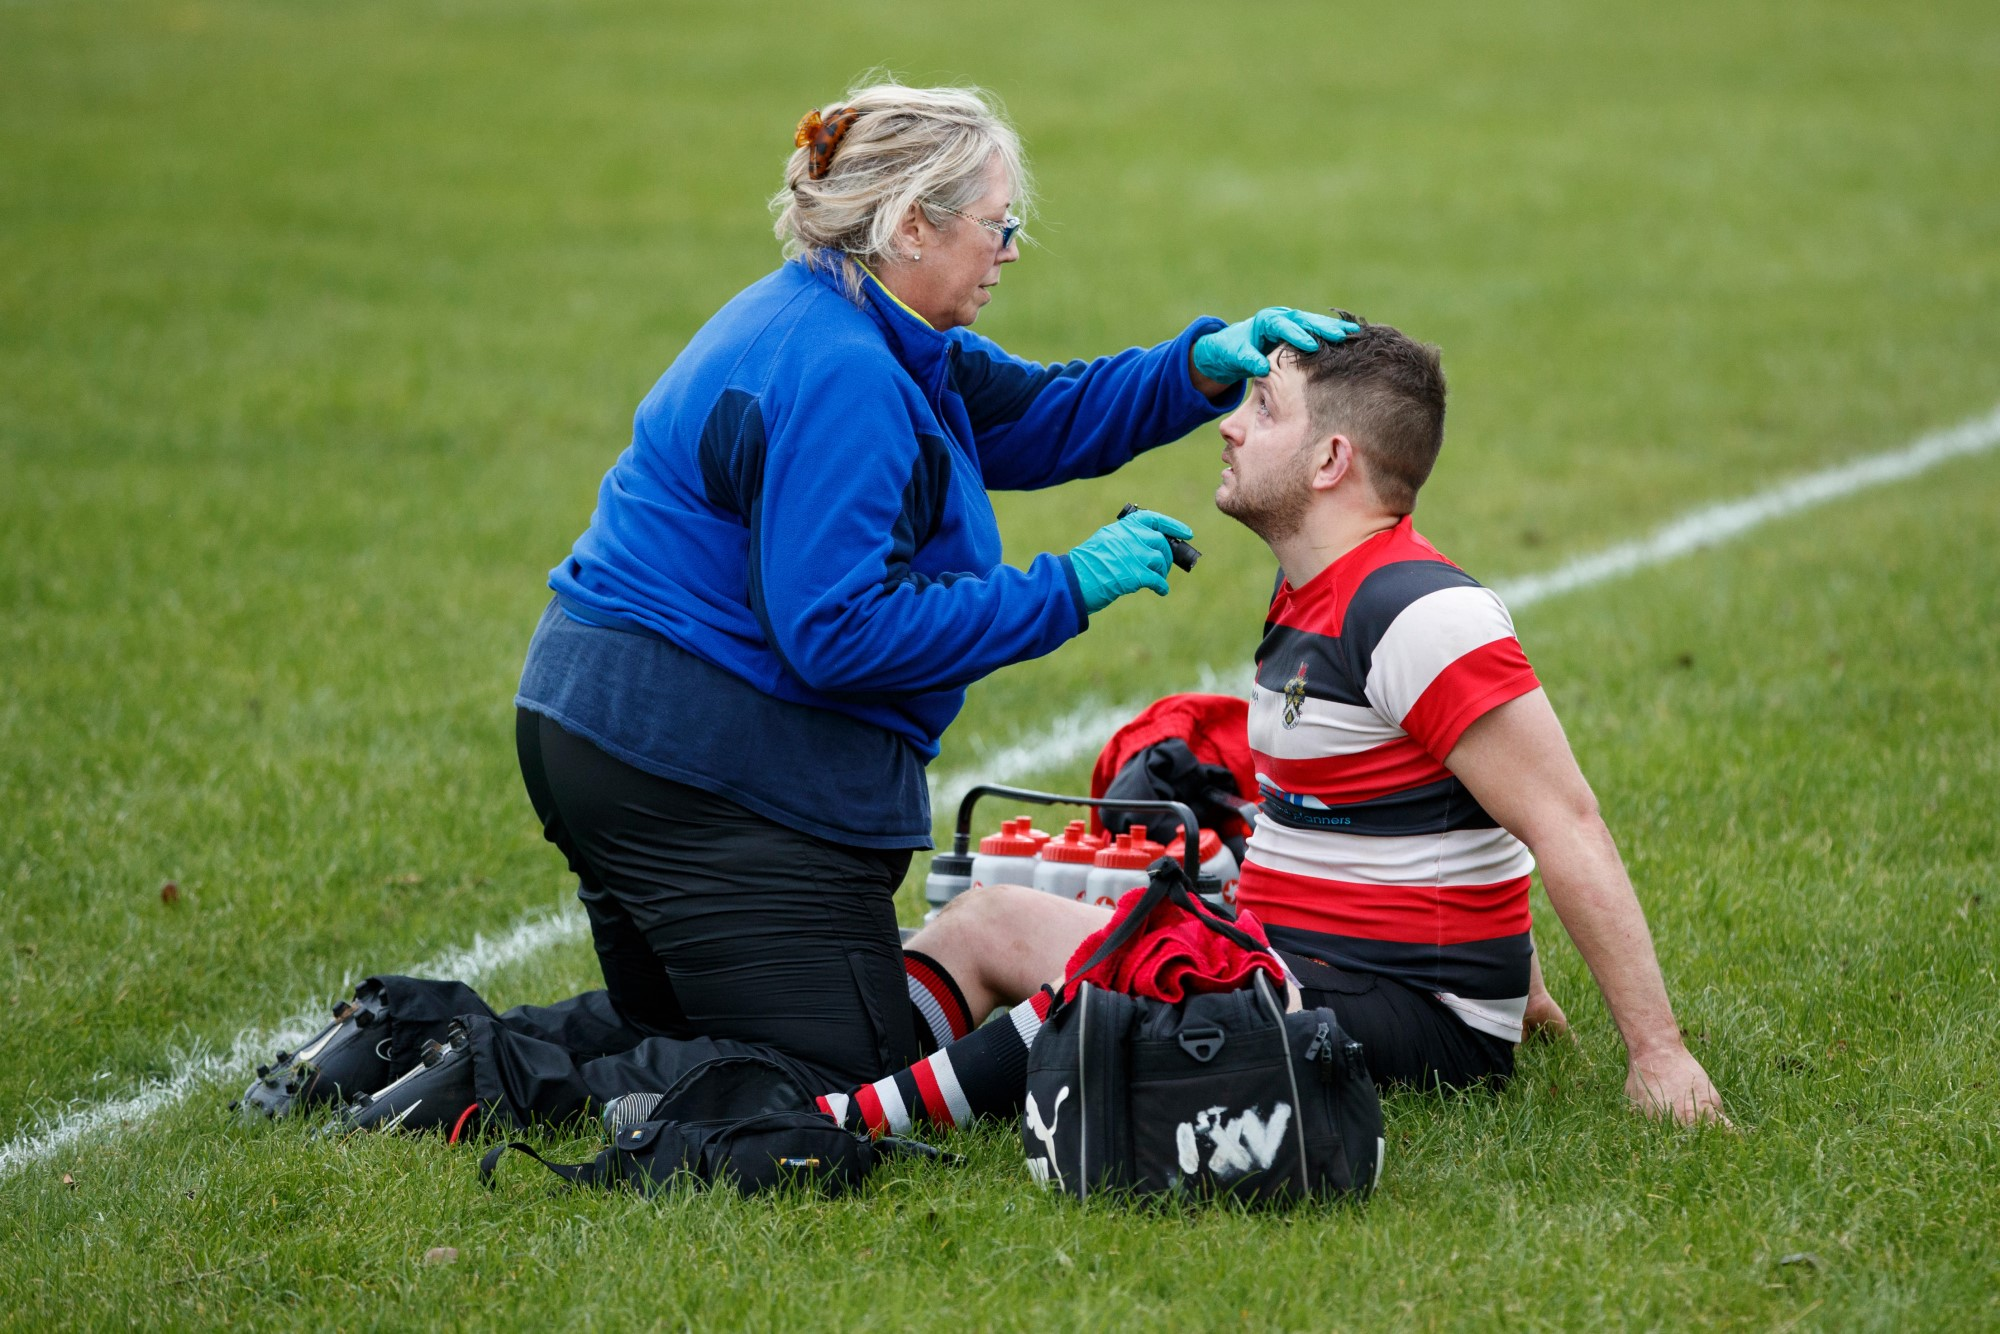 A rugby player being checked by a medic after a knock to the head